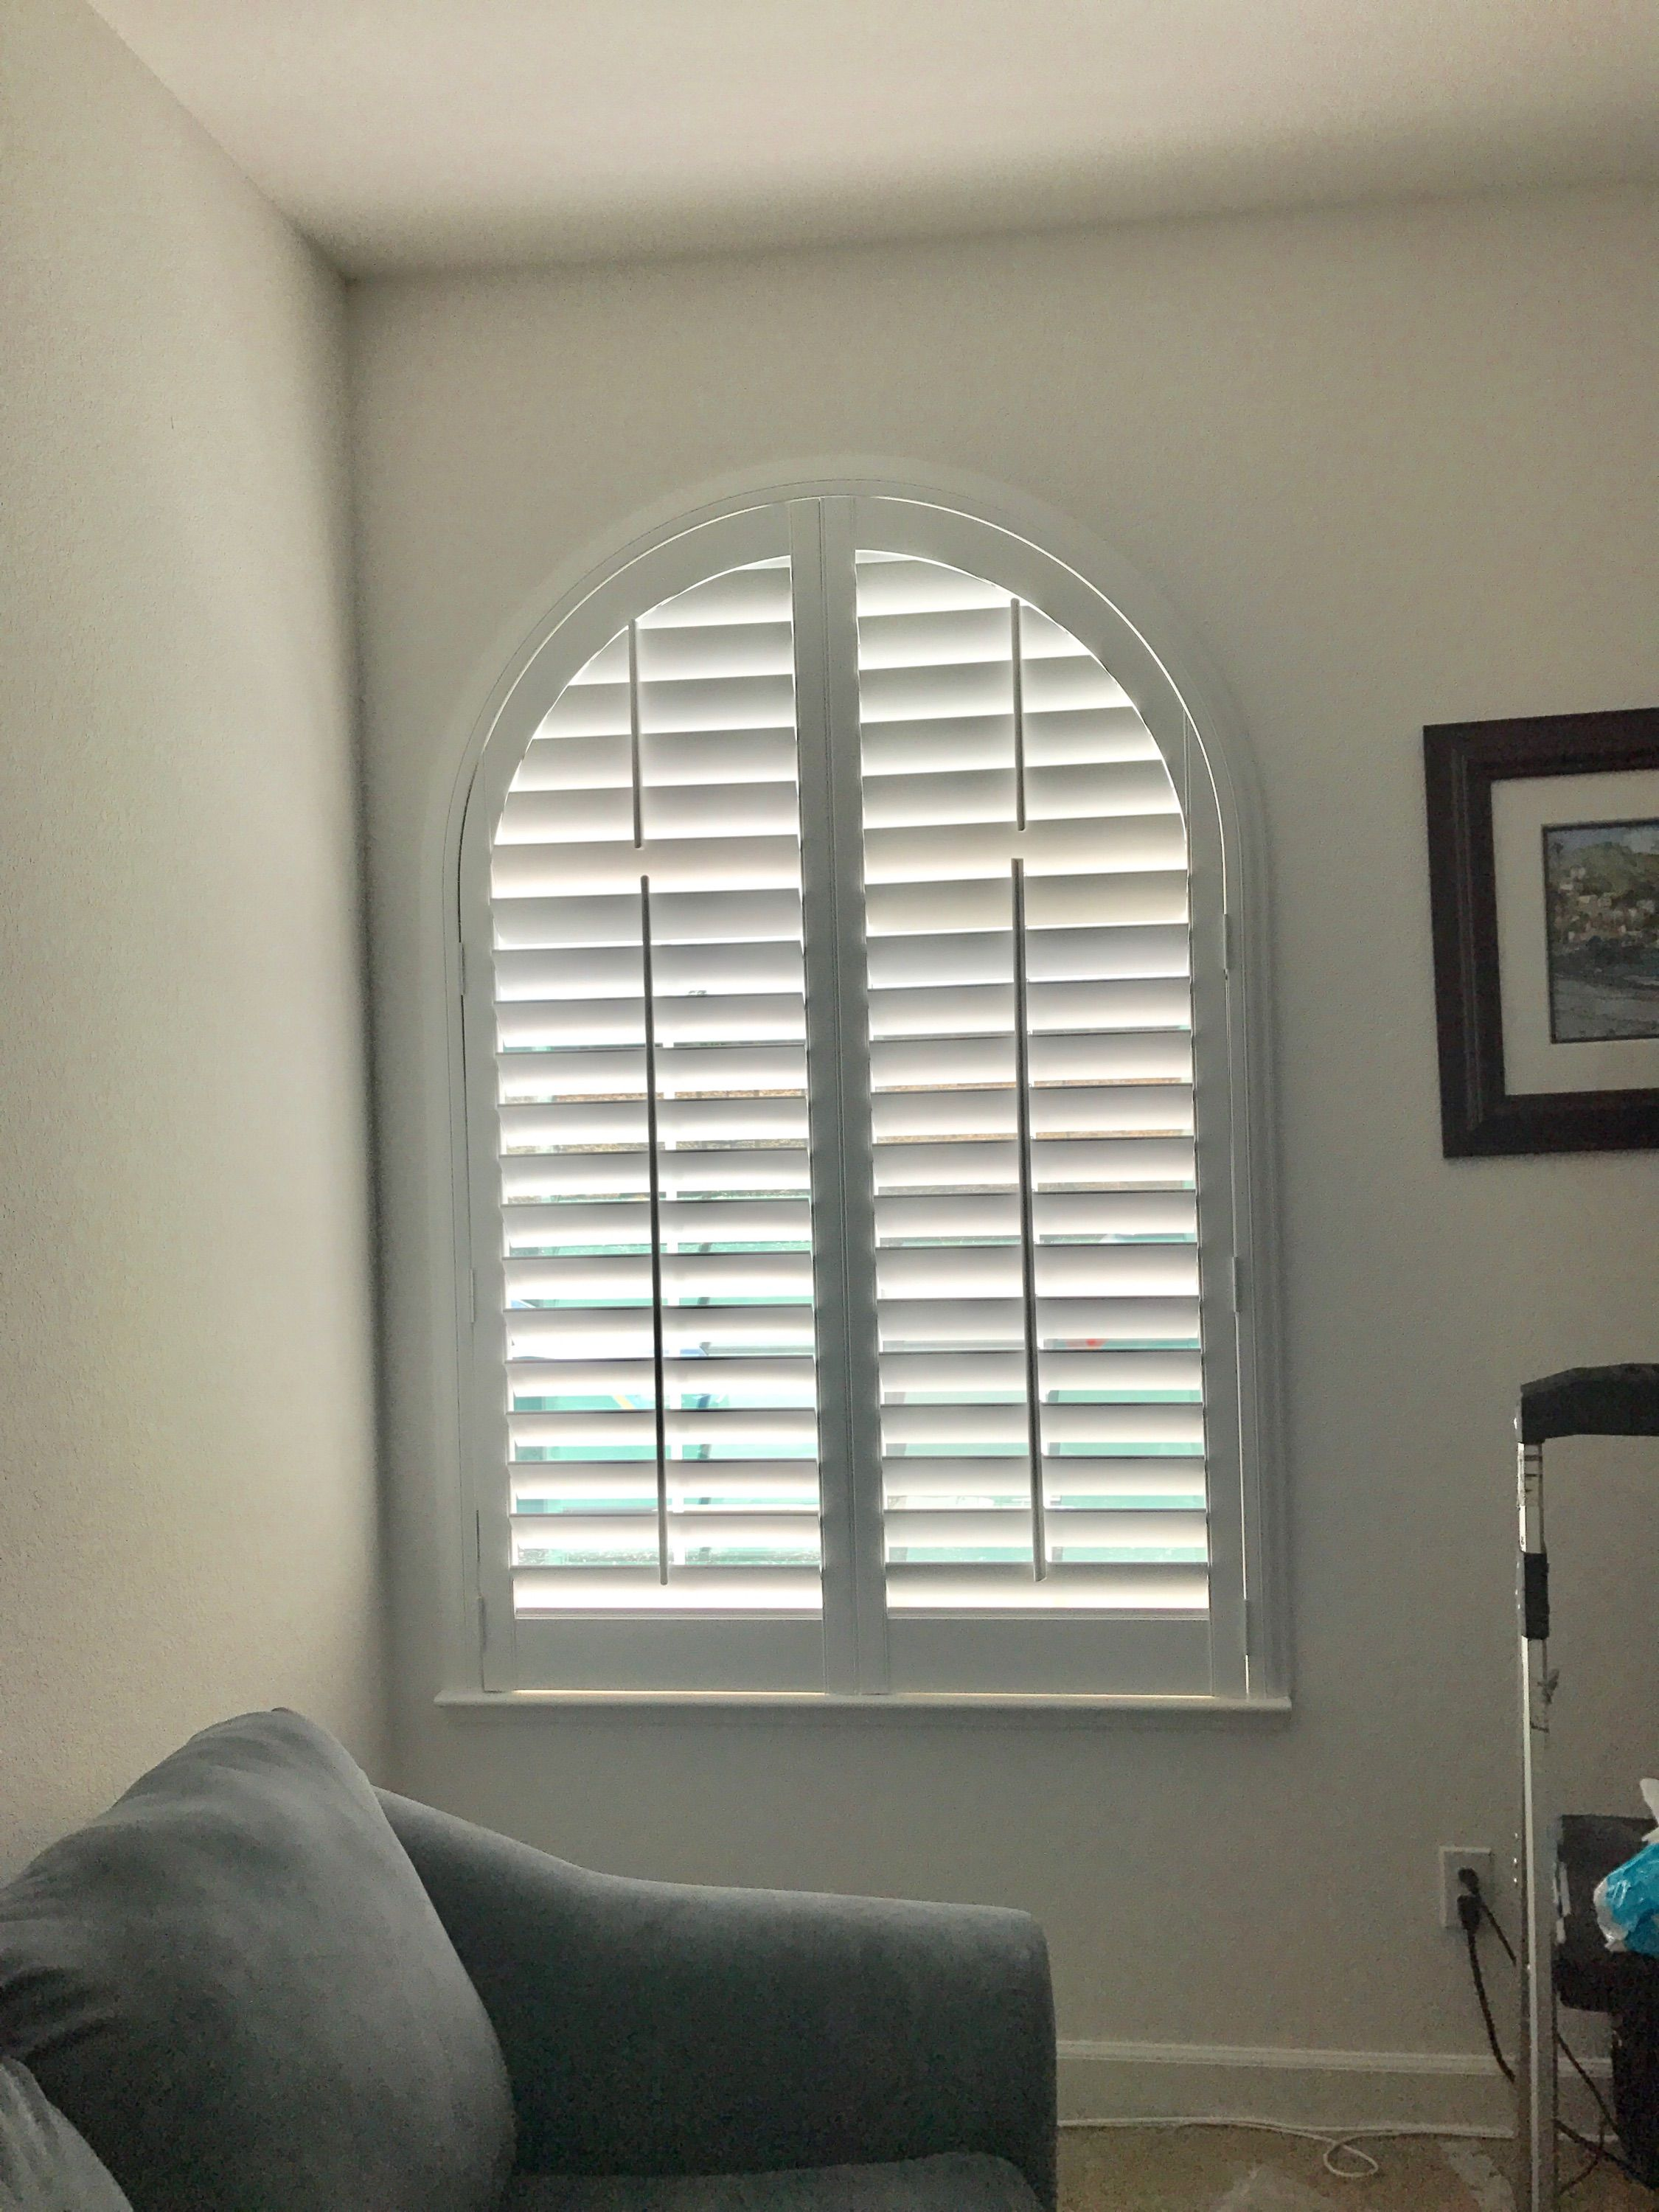 shades satukis mandaly blinds vertical maxxmar shutters open info closed one opera with